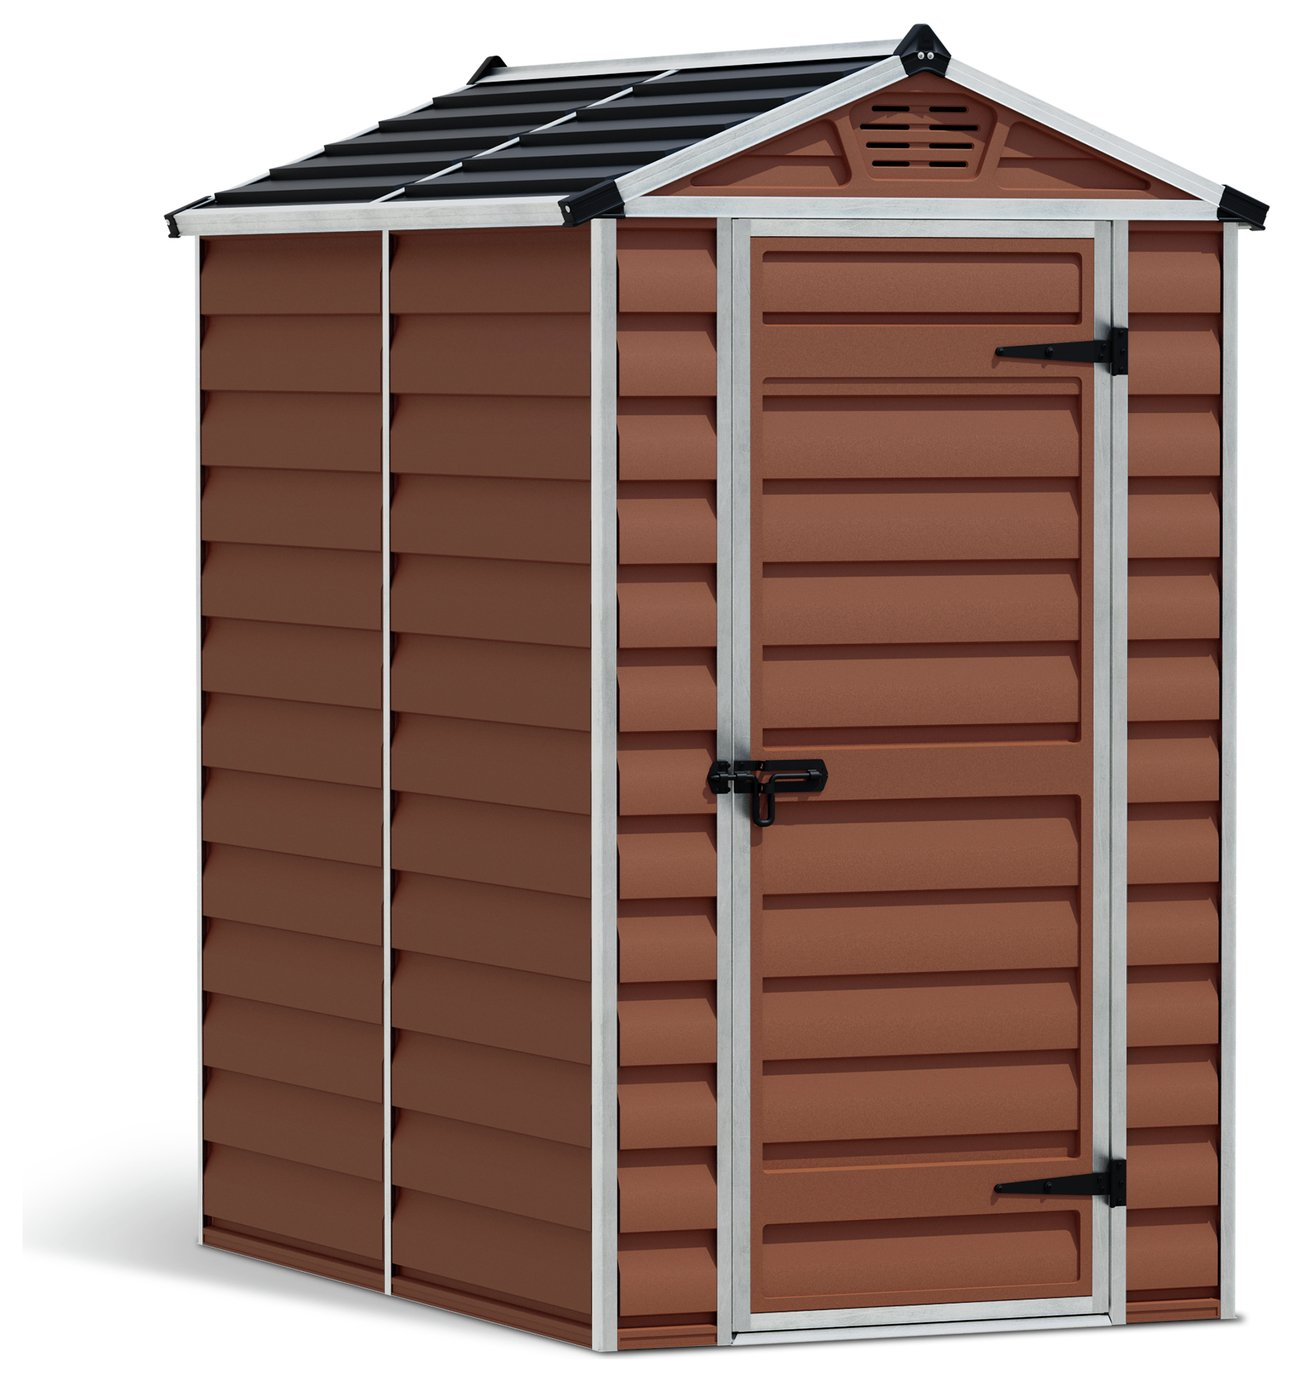 Palram Skylight Plastic 4 x 6ft Garden Shed - Amber Best Price, Cheapest Prices